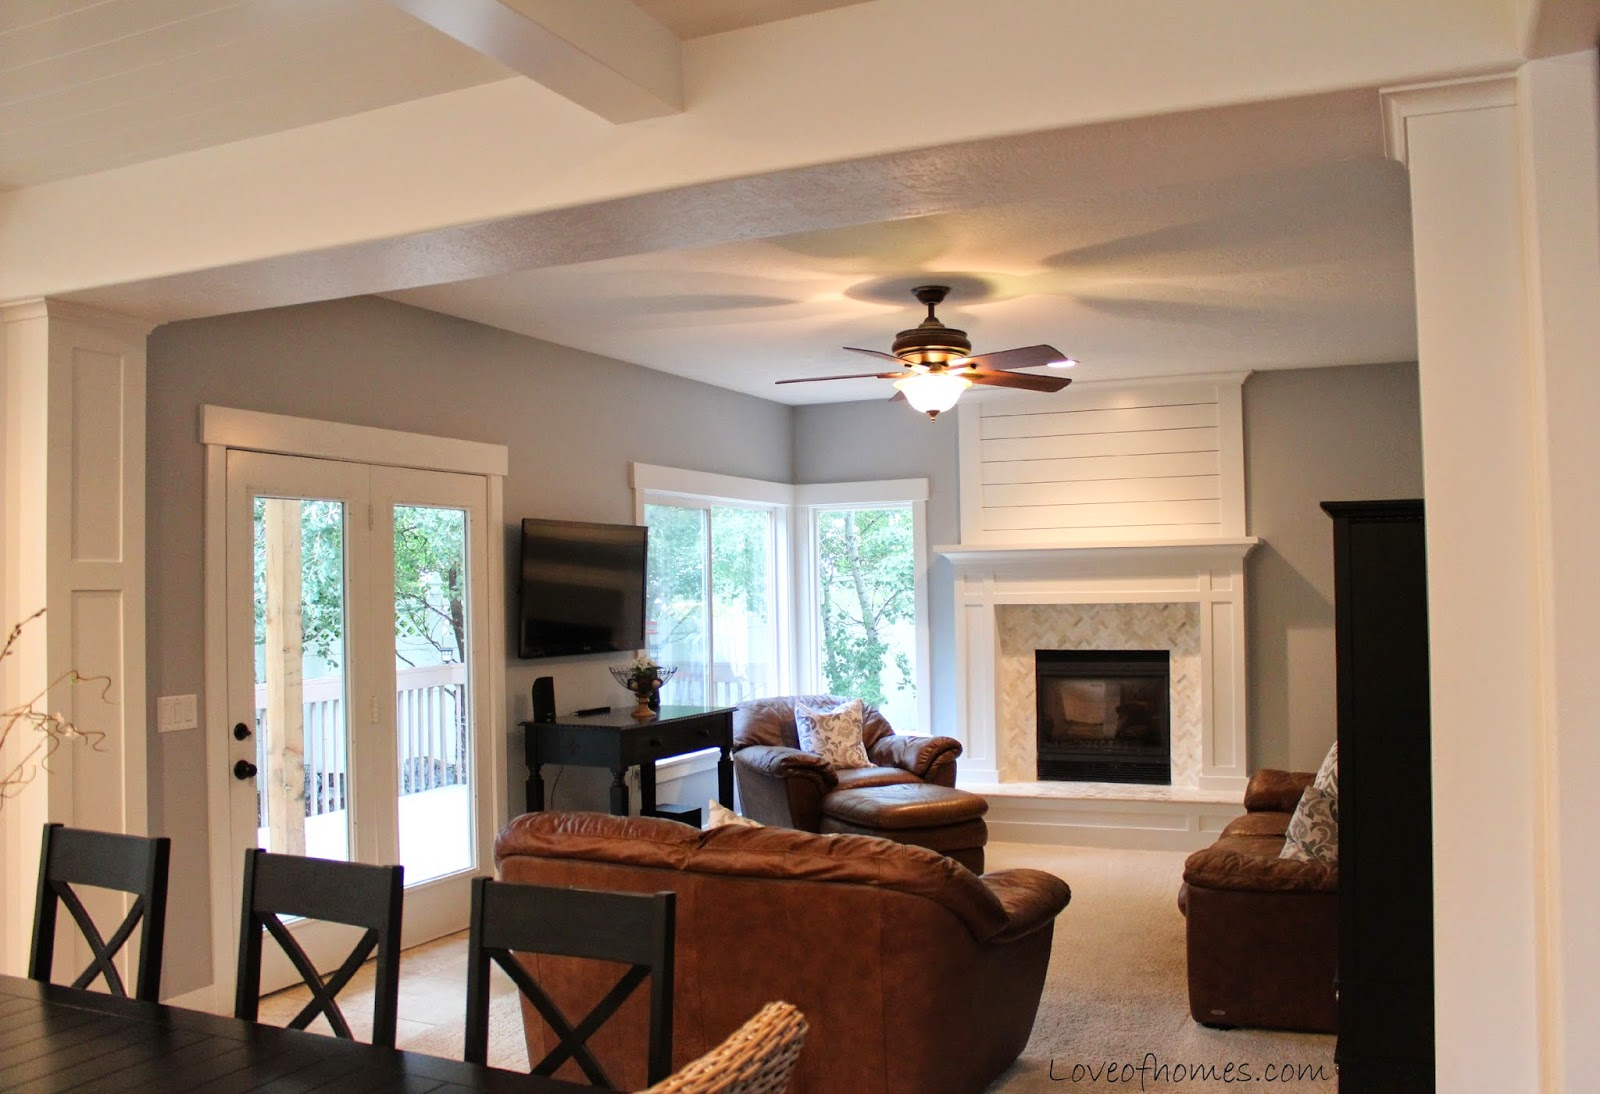 Diy Fireplace Makeover Ideas Before The Grey Paint Wash Red Brick Fireplace Makeover